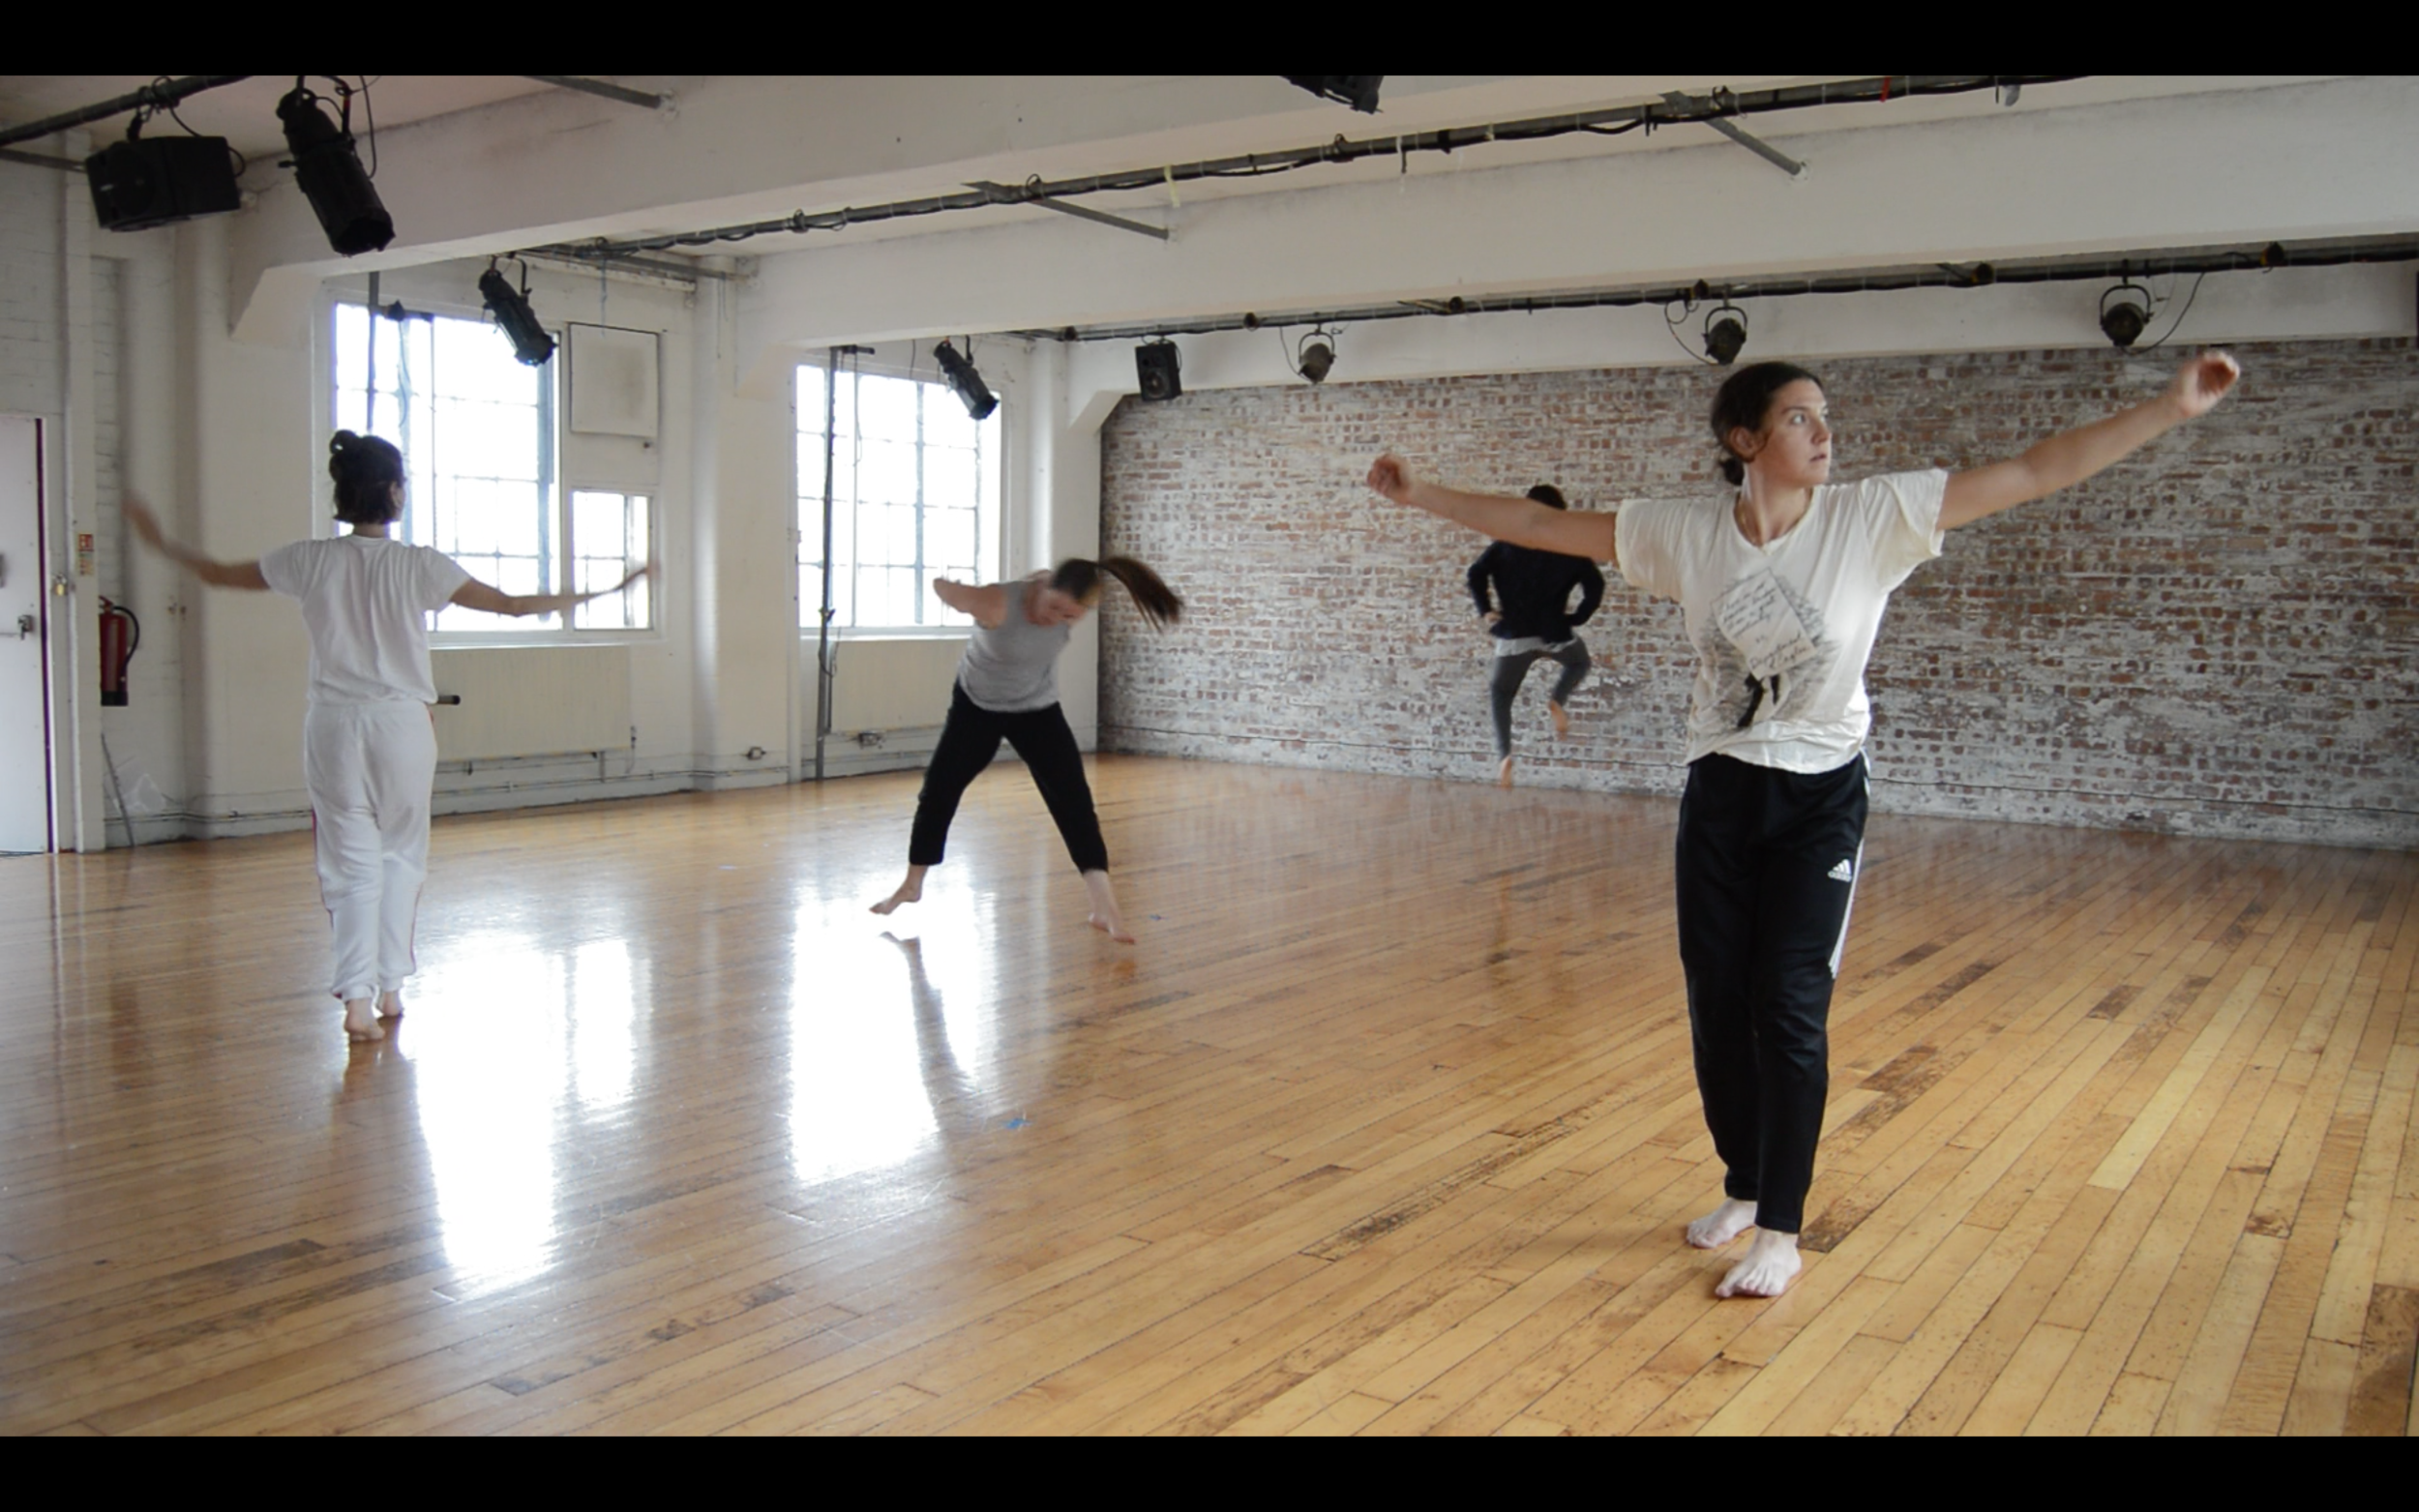 Eleanor and Nora working at Chisenhale Dance Space.